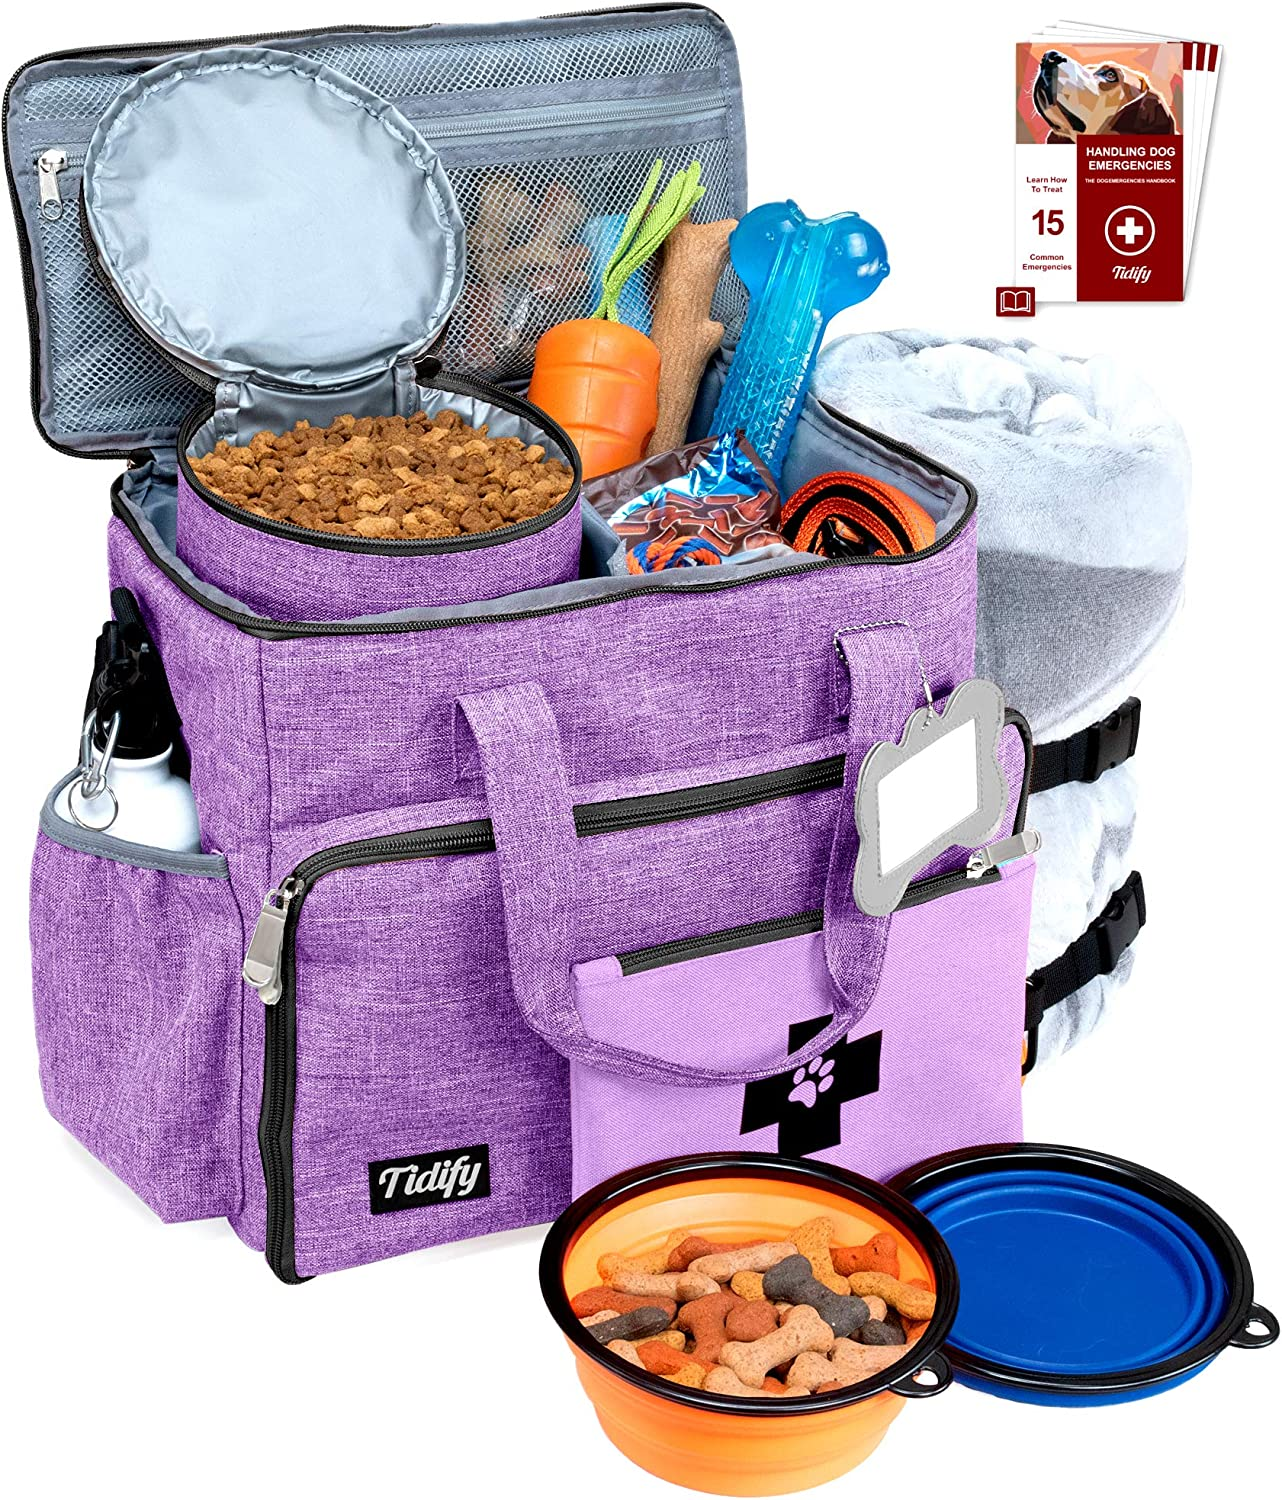 Dog Ranking TOP20 Travel Recommended Bag Week Away Overnight Accessories - Organizer F Pet